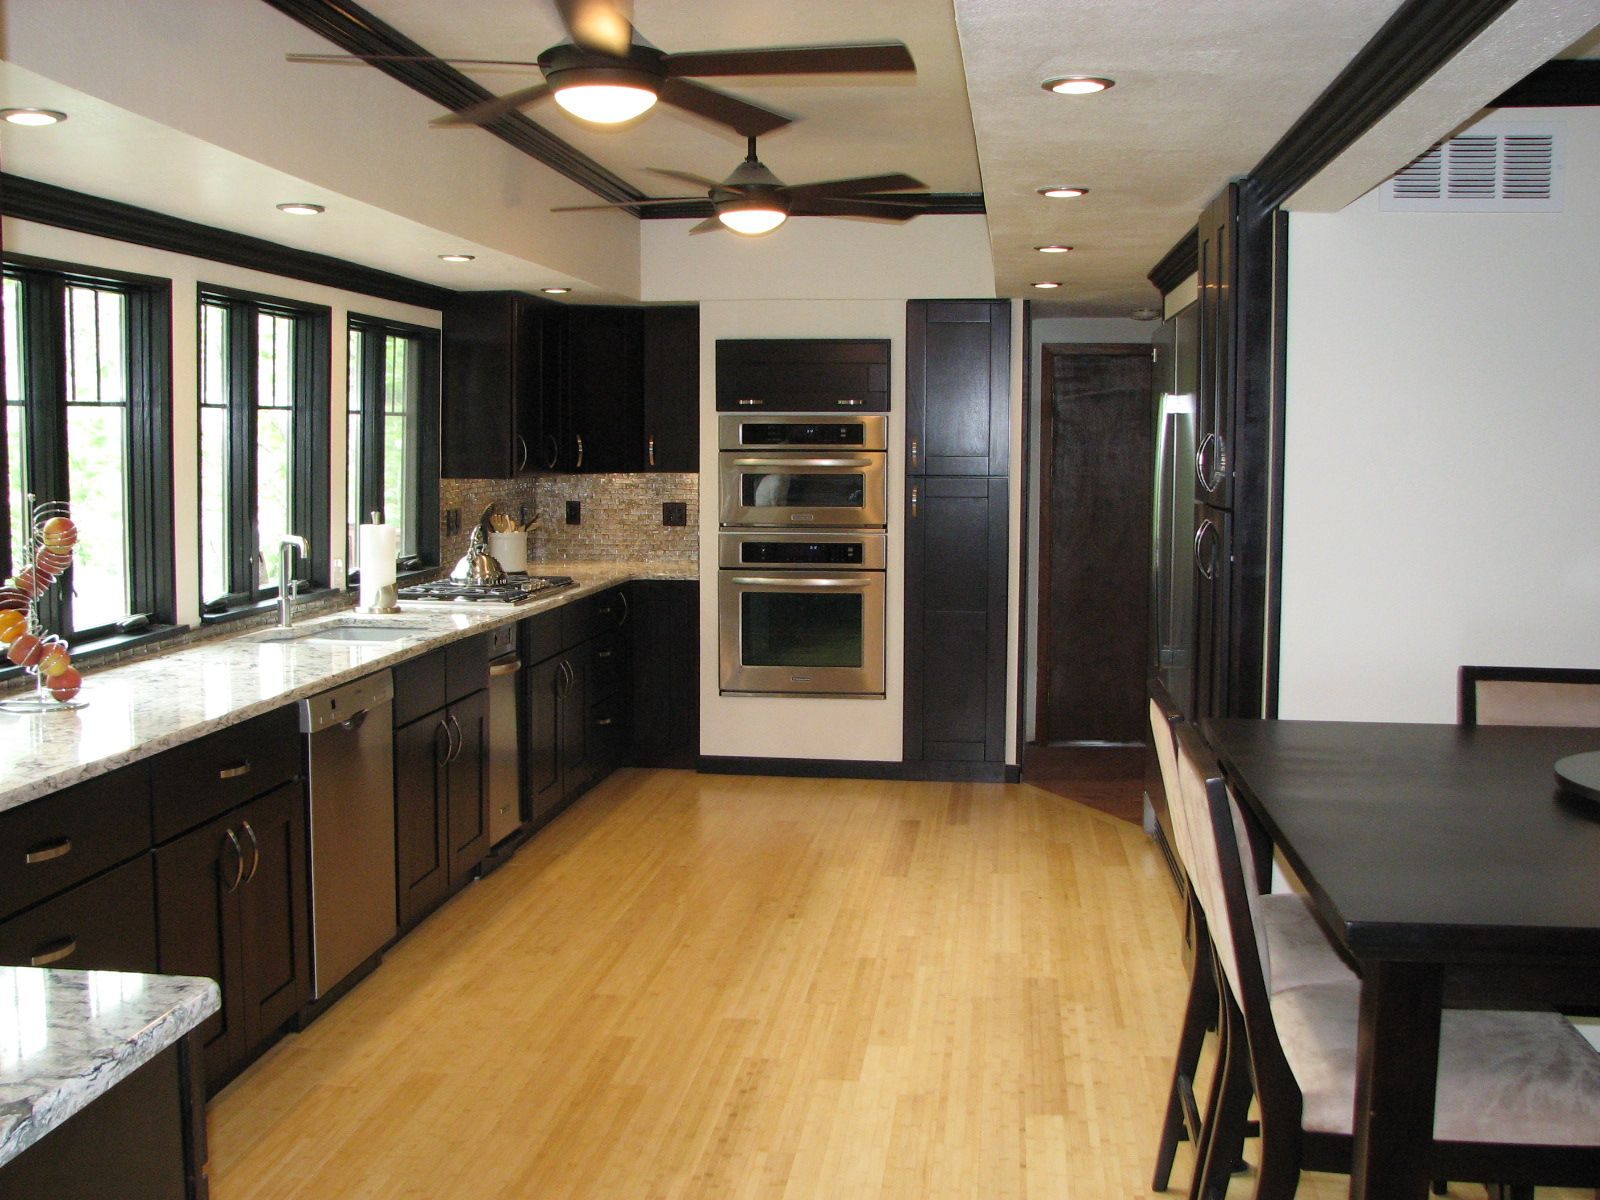 Galley Kitchen Remodel Dark Cabinets built in kitchen cabinets plans | house remodeling ideas